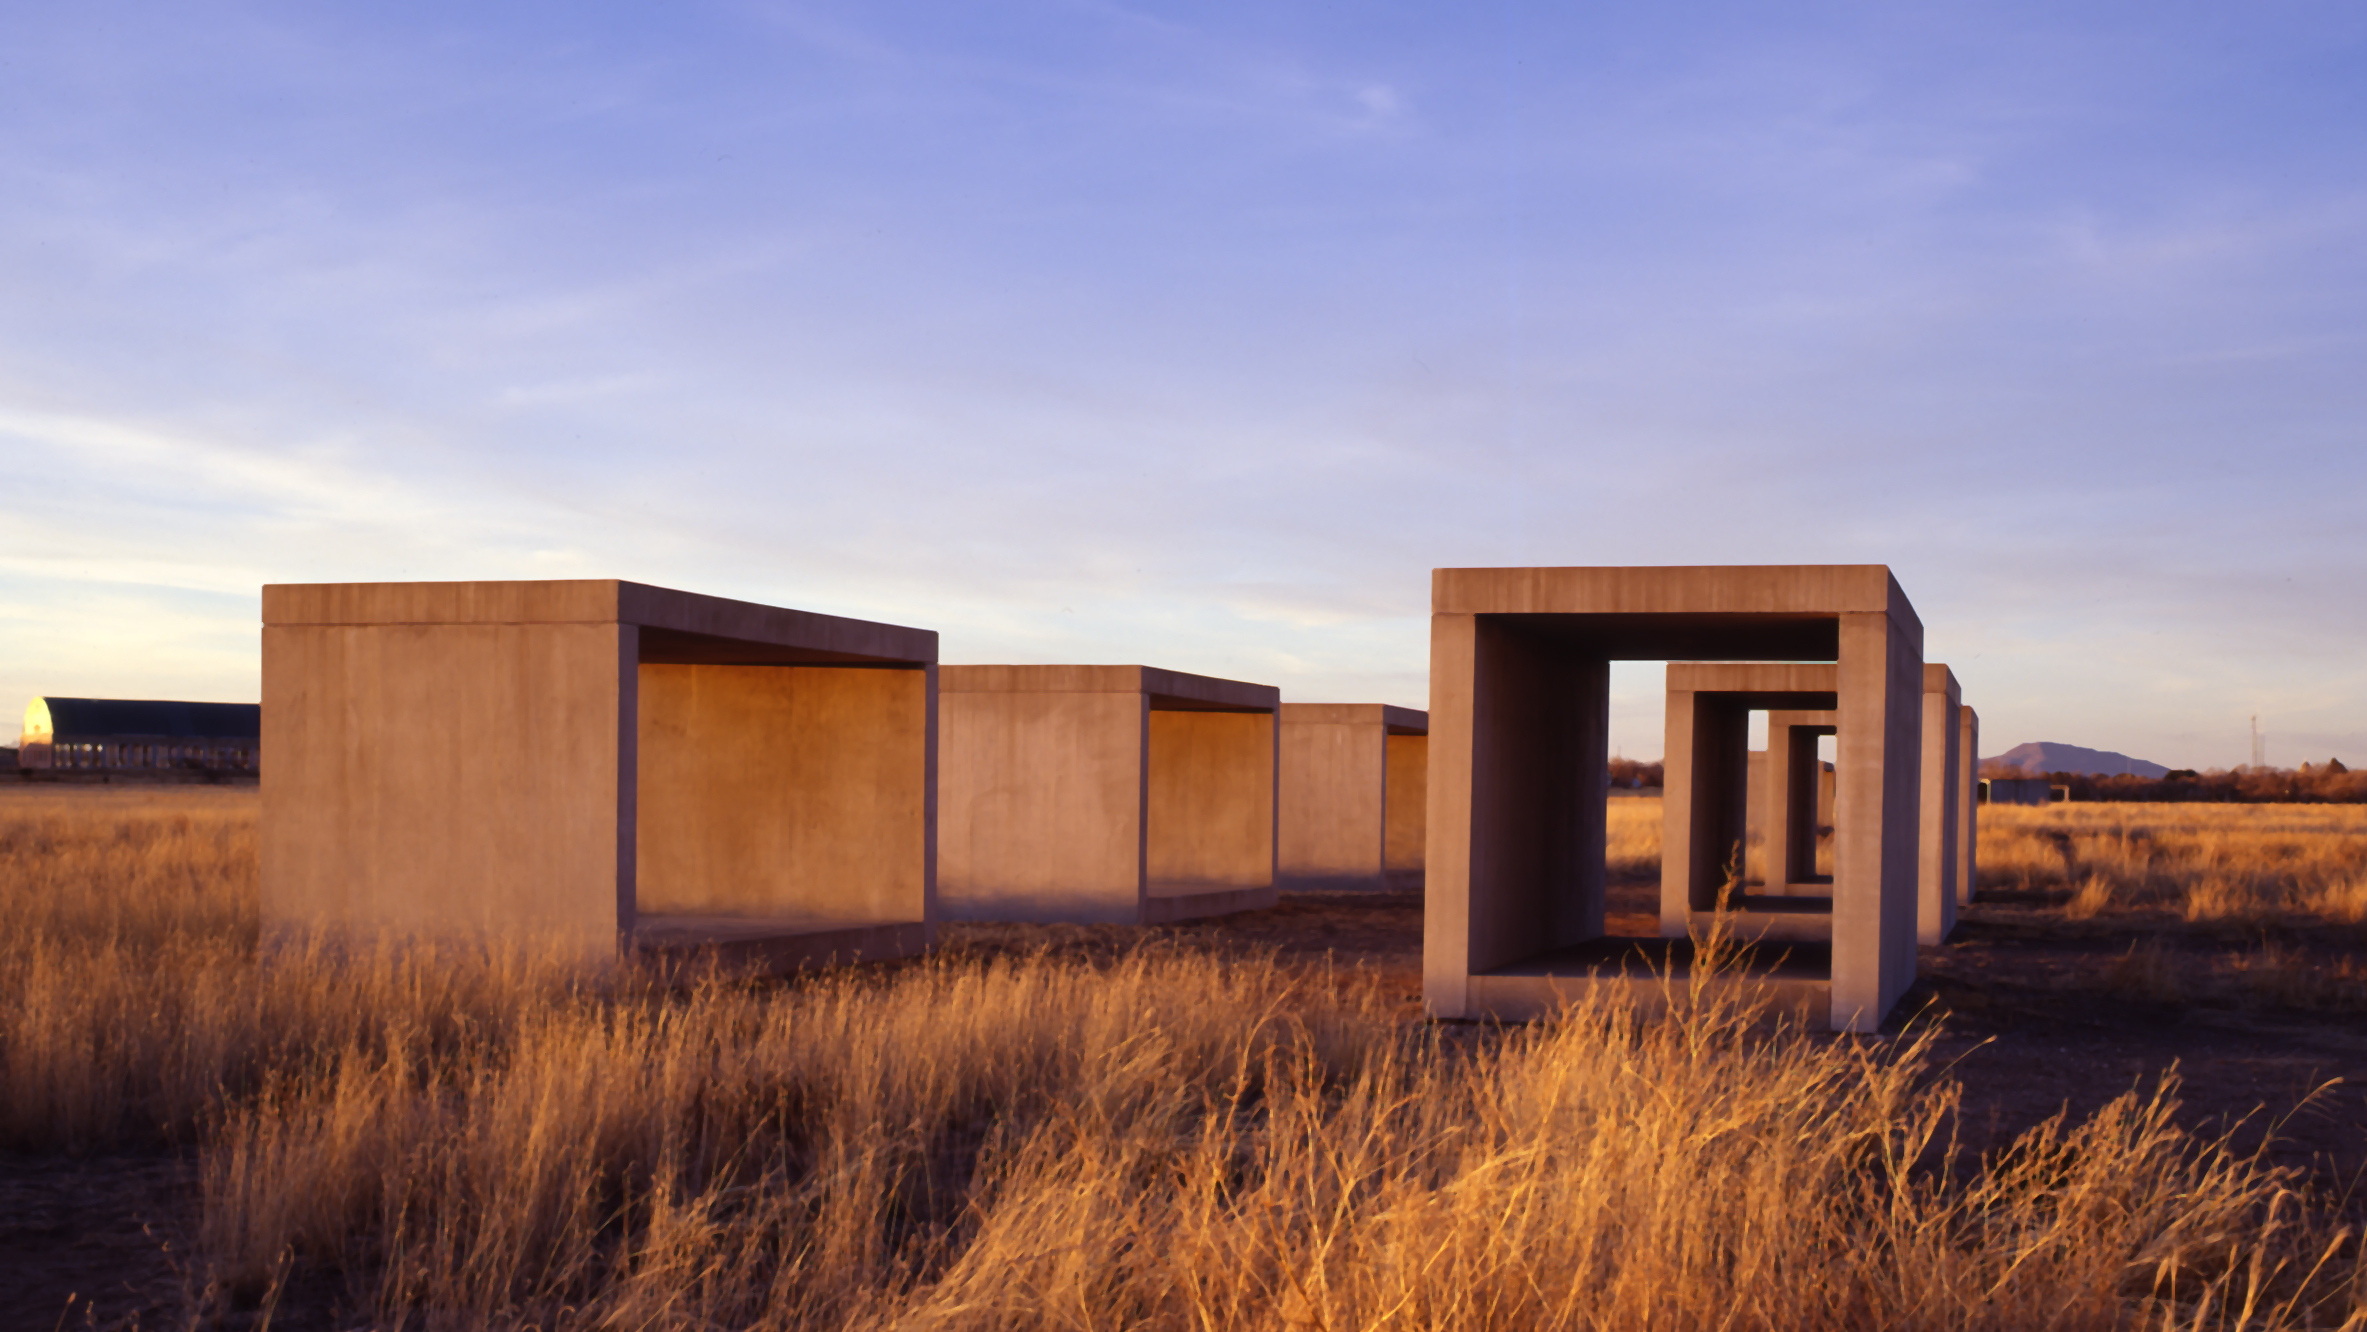 Giant cubes by artist Donald Judd in Marfa, Texas